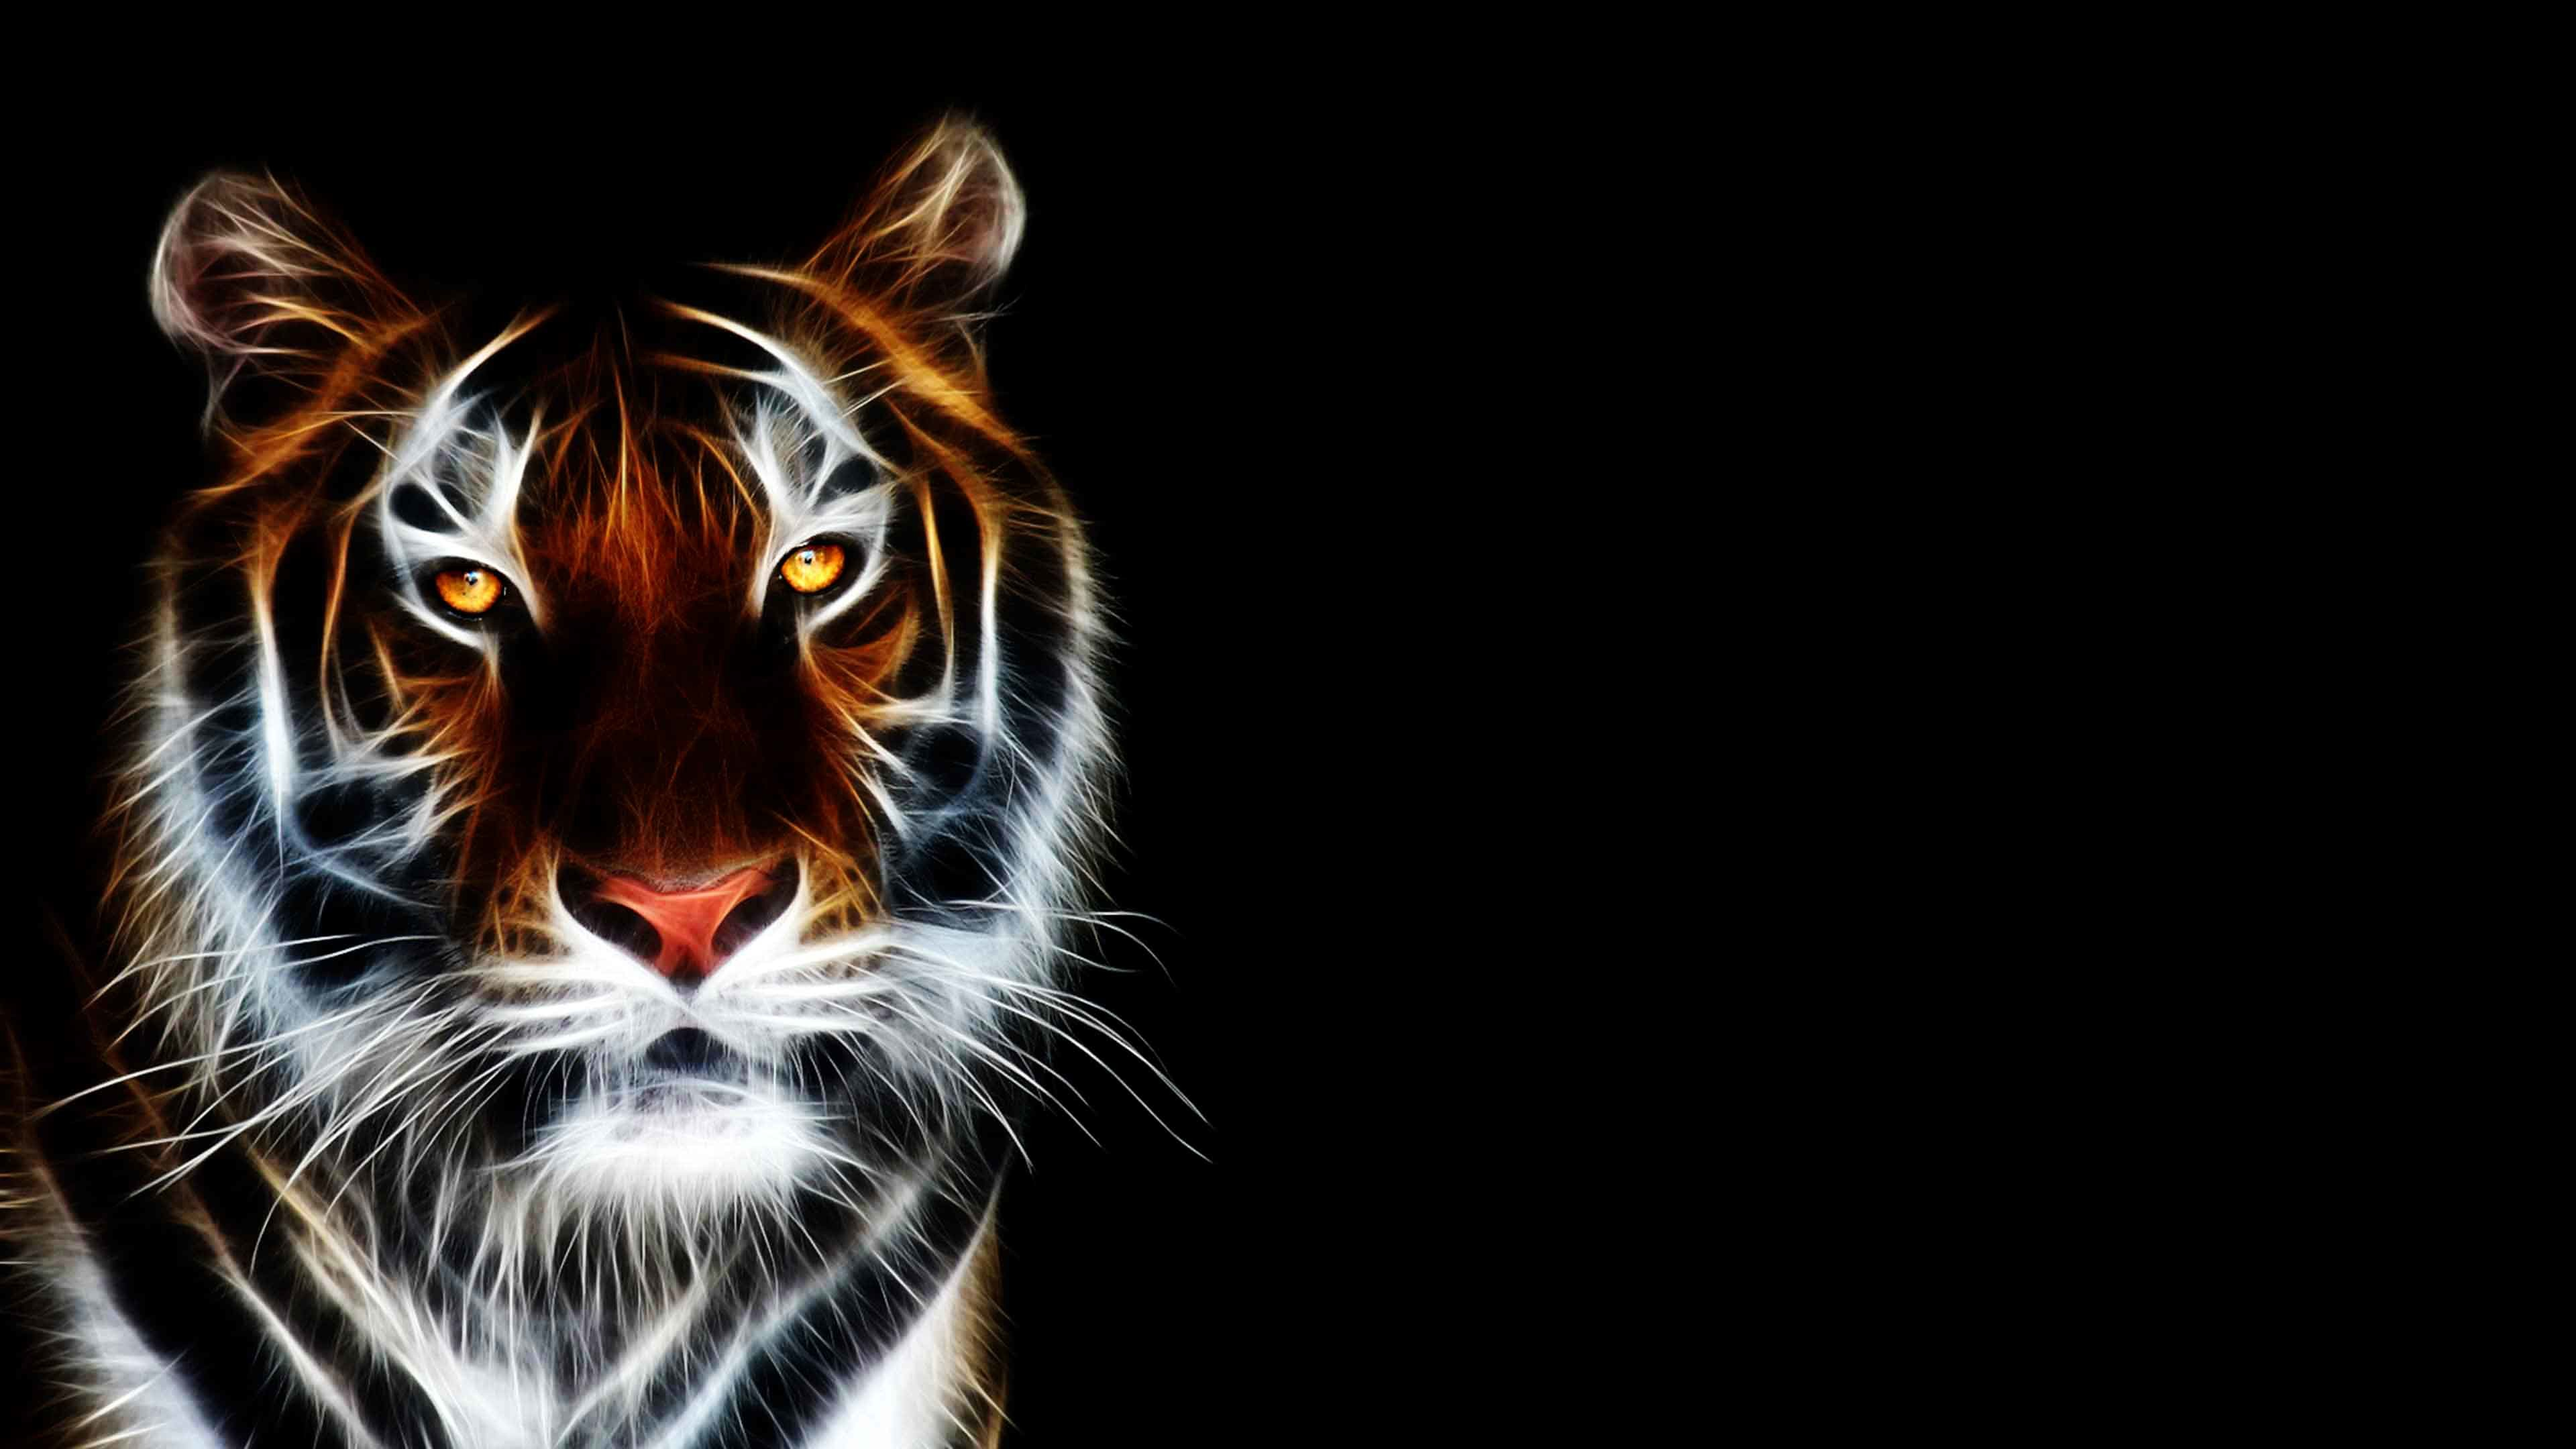 3840x2160 animated tiger wallpaper